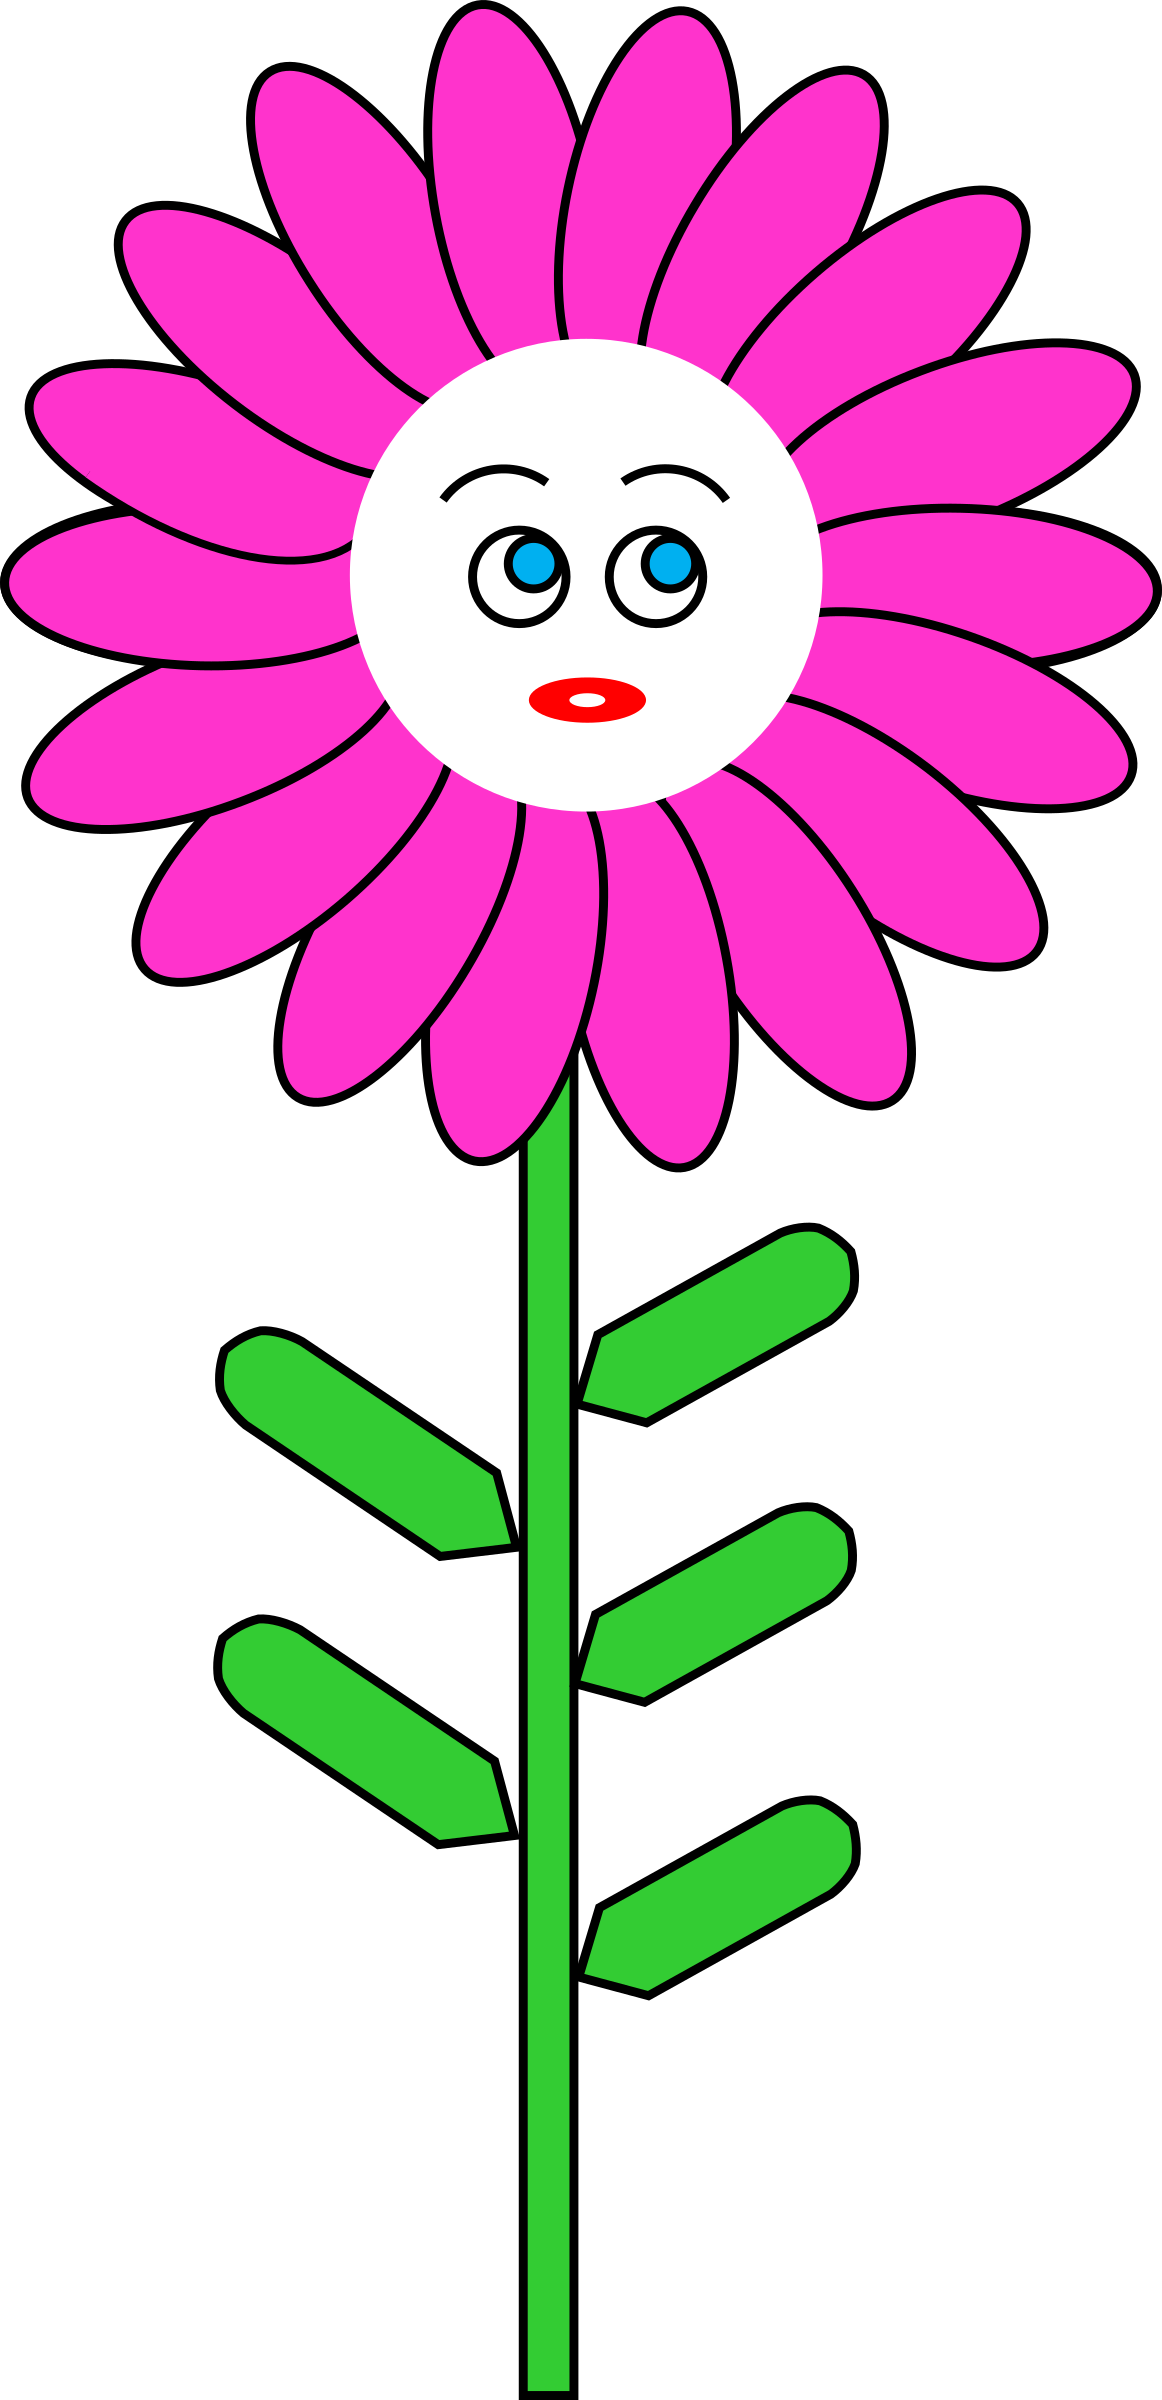 Face clipart flower. Magenta with big image